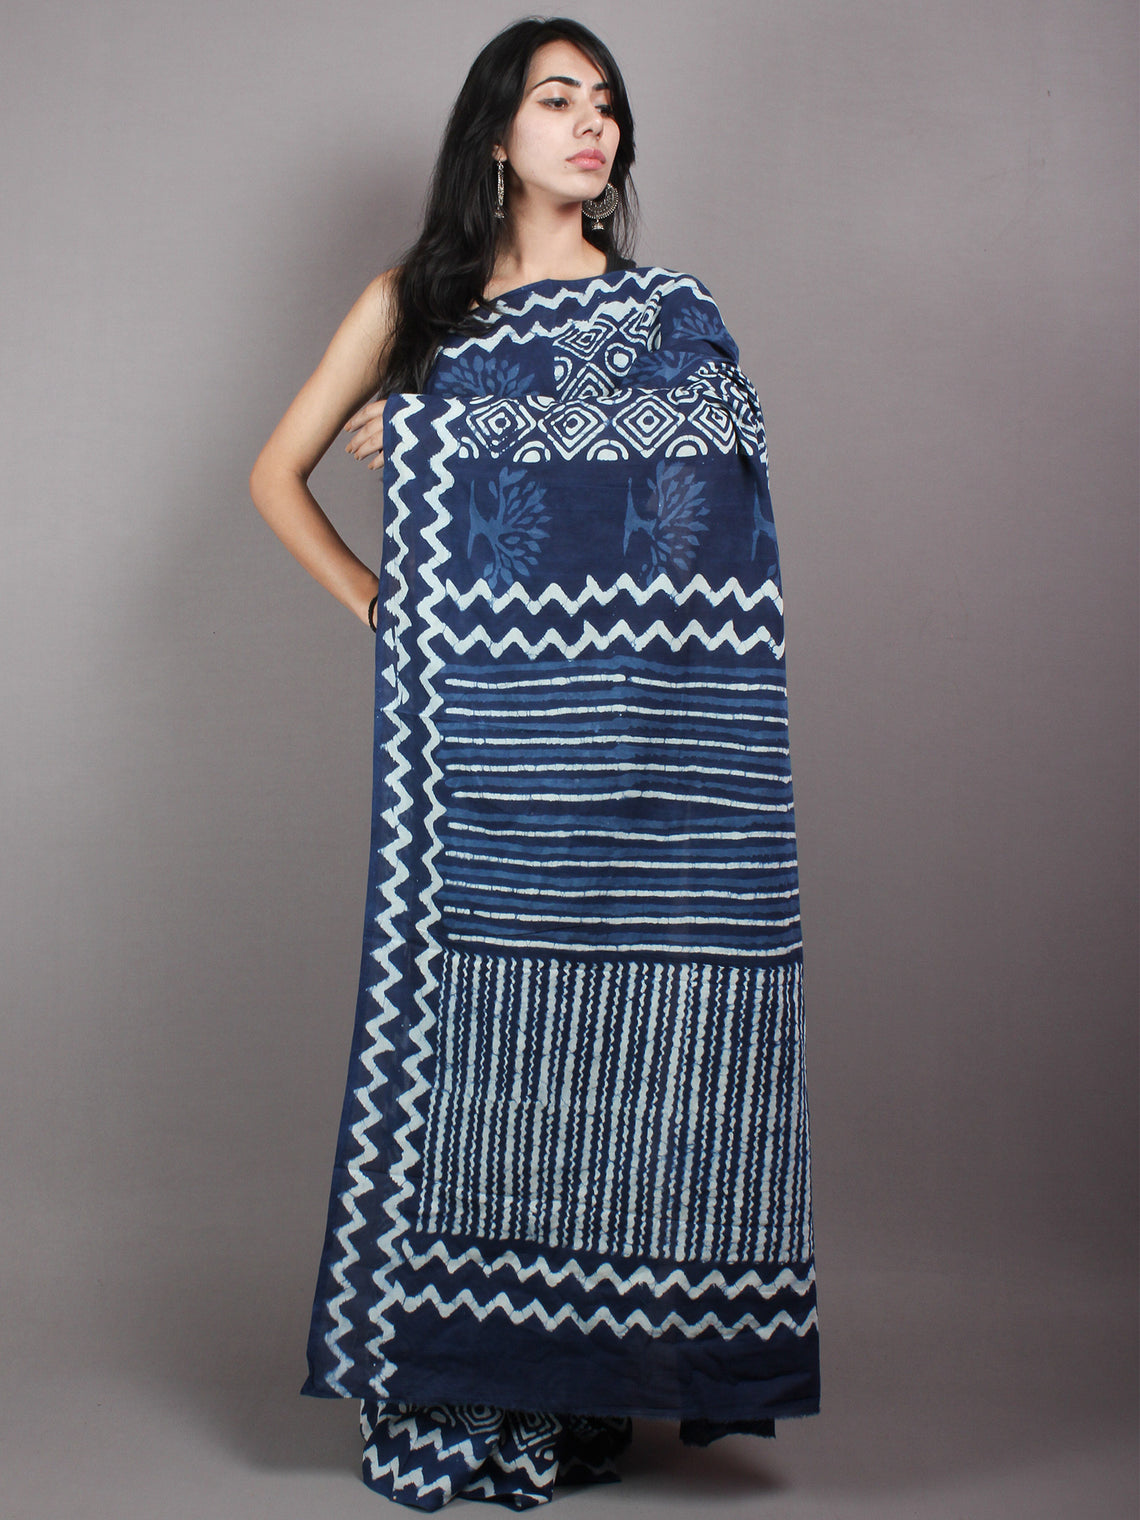 Indigo White Cotton Hand Block Printed & Painted Saree - S03170626